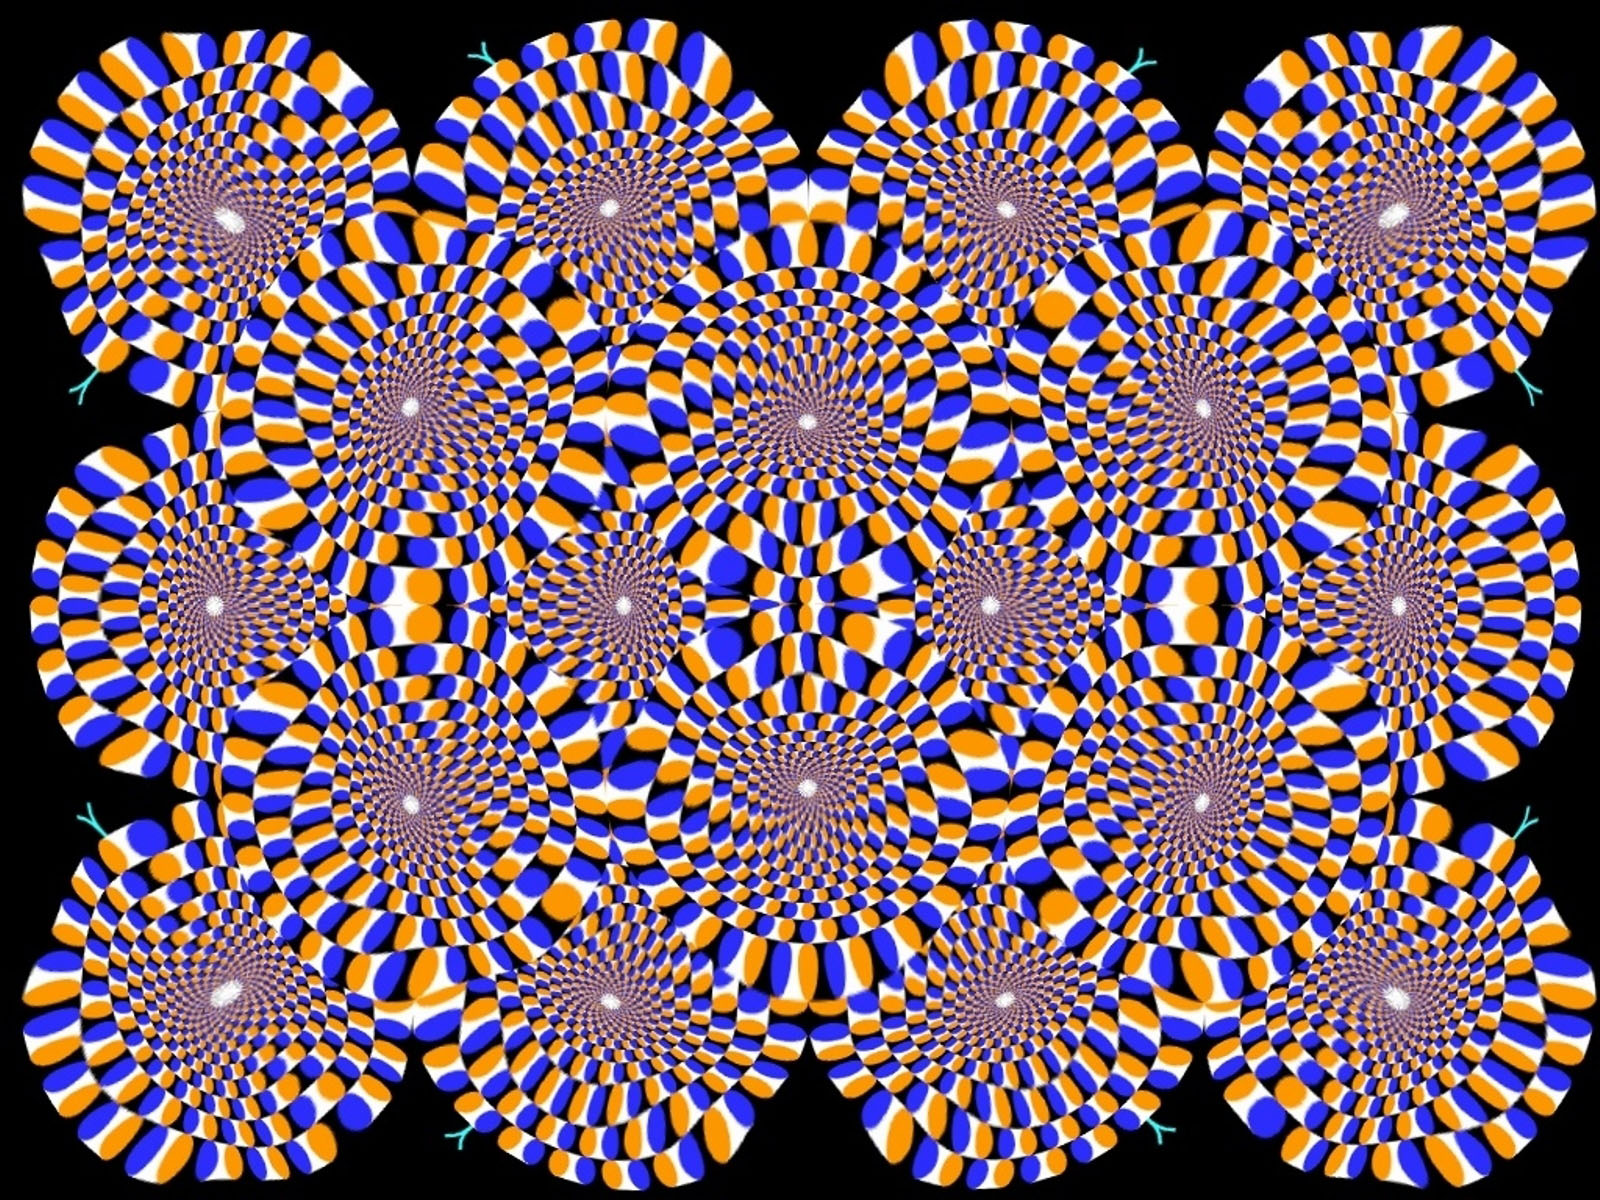 optical illusion wallpapers backgrounds illusions eye trippy tricks trick moving 3d magic visual move crazy tag